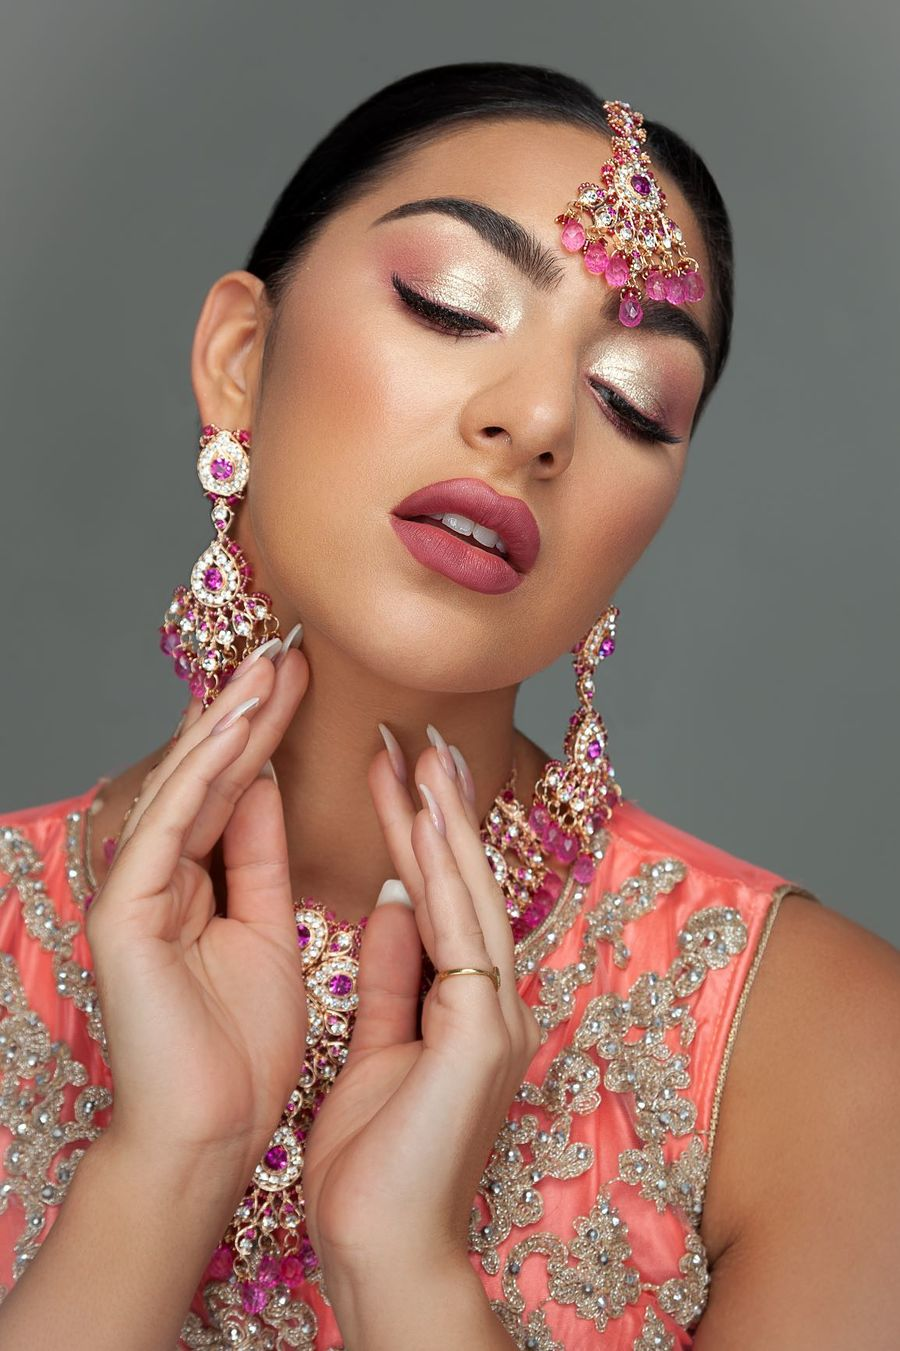 Malvie publication Indian Inspired / Photography by strussler, Model Elesha Eden, Makeup by Mariola Mamak MUA, Post processing by Barbara Flyte, Stylist Elesha Eden, Taken at Inspire Studios Ltd, Hair styling by Elesha Eden, Assisted by Inspire Studios Ltd / Uploaded 19th January 2021 @ 06:44 PM